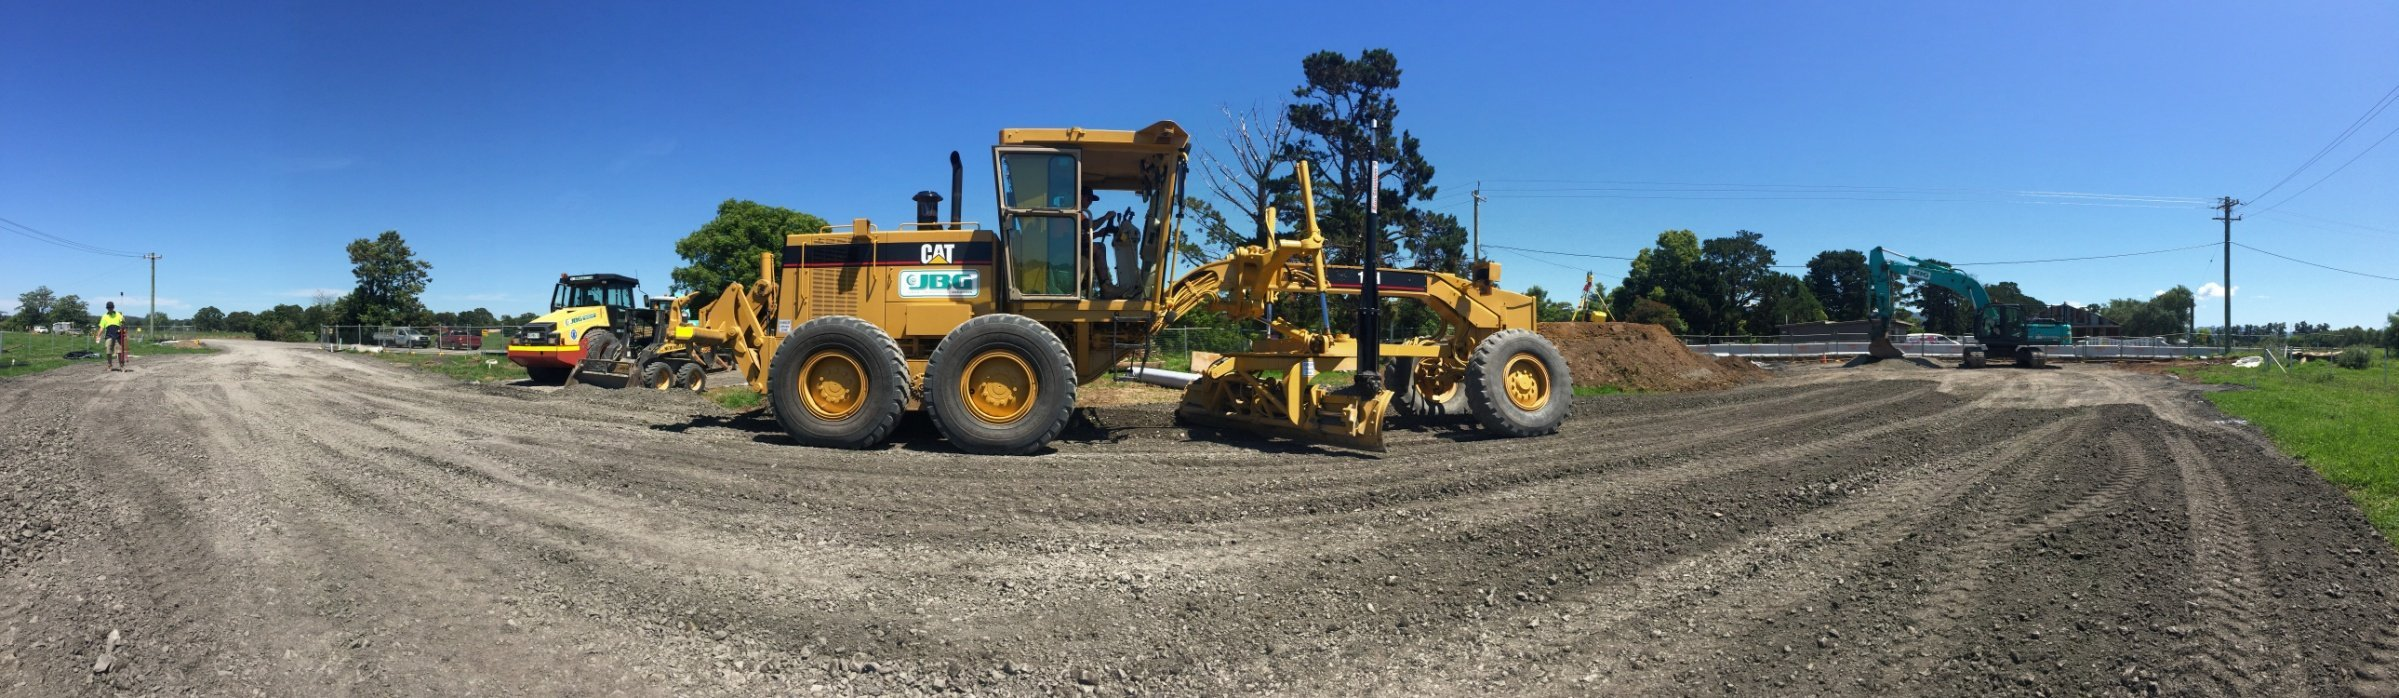 NOWRA WASTE WATER TREATMENT PLANT ROAD UPGRADE